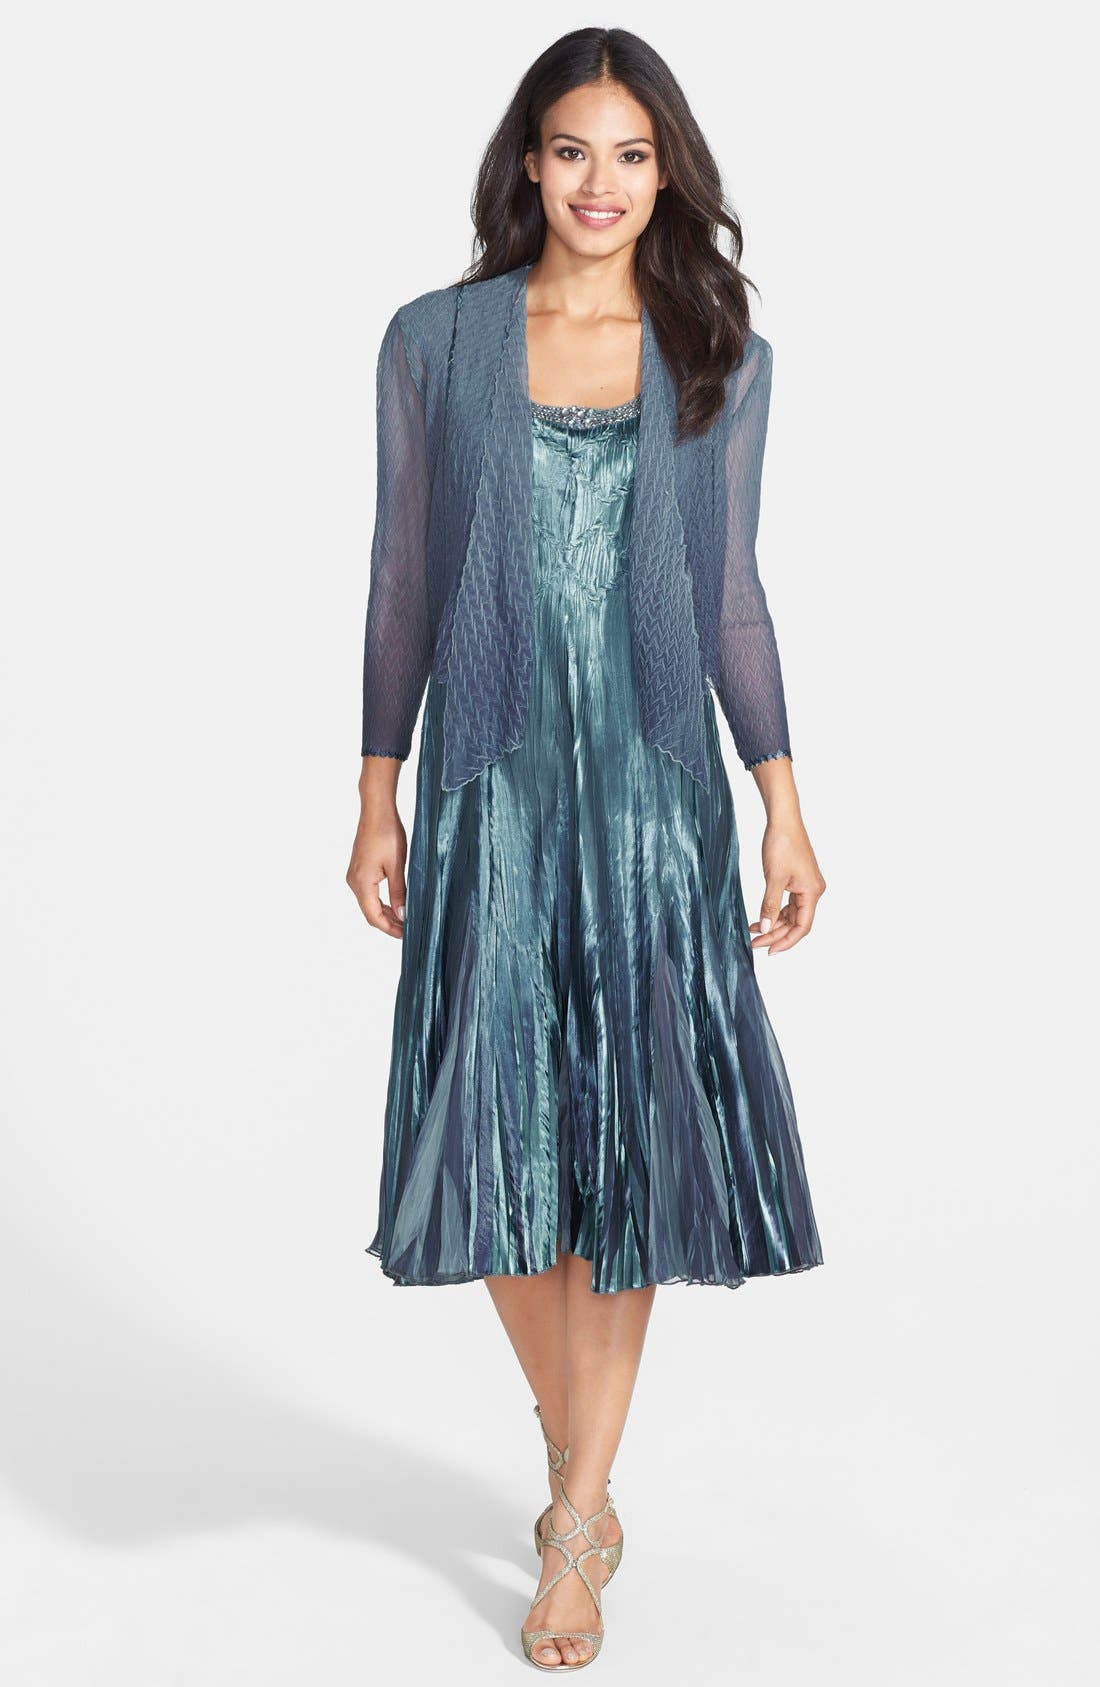 Embellished Pleat Mixed Media Dress with Jacket,                             Main thumbnail 1, color,                             Silver Blue Ombre